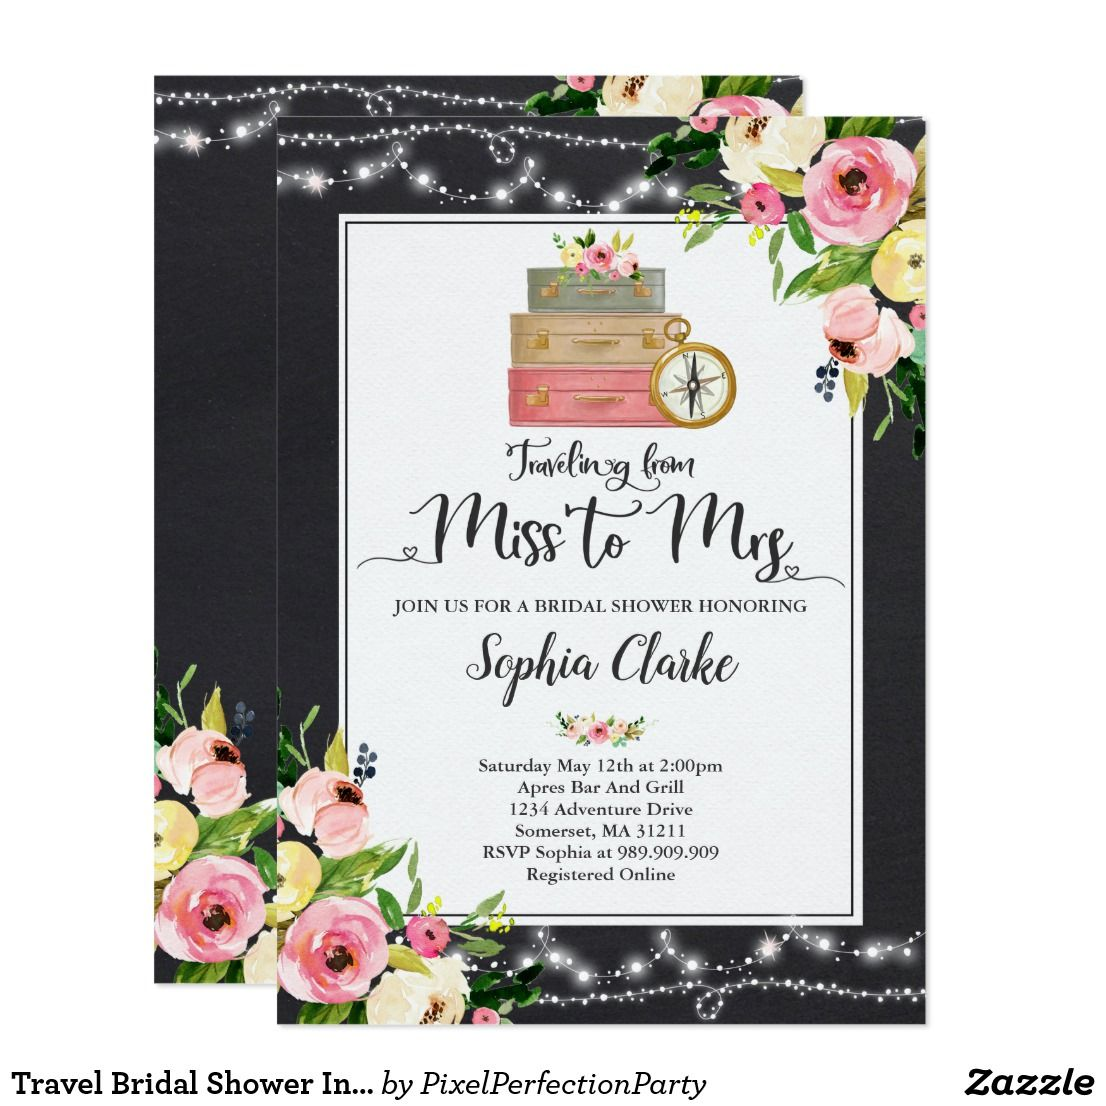 travel bridal shower invitation miss to mrs floral fun wedding invites customize these invitations for your weddings invitations invites weddings